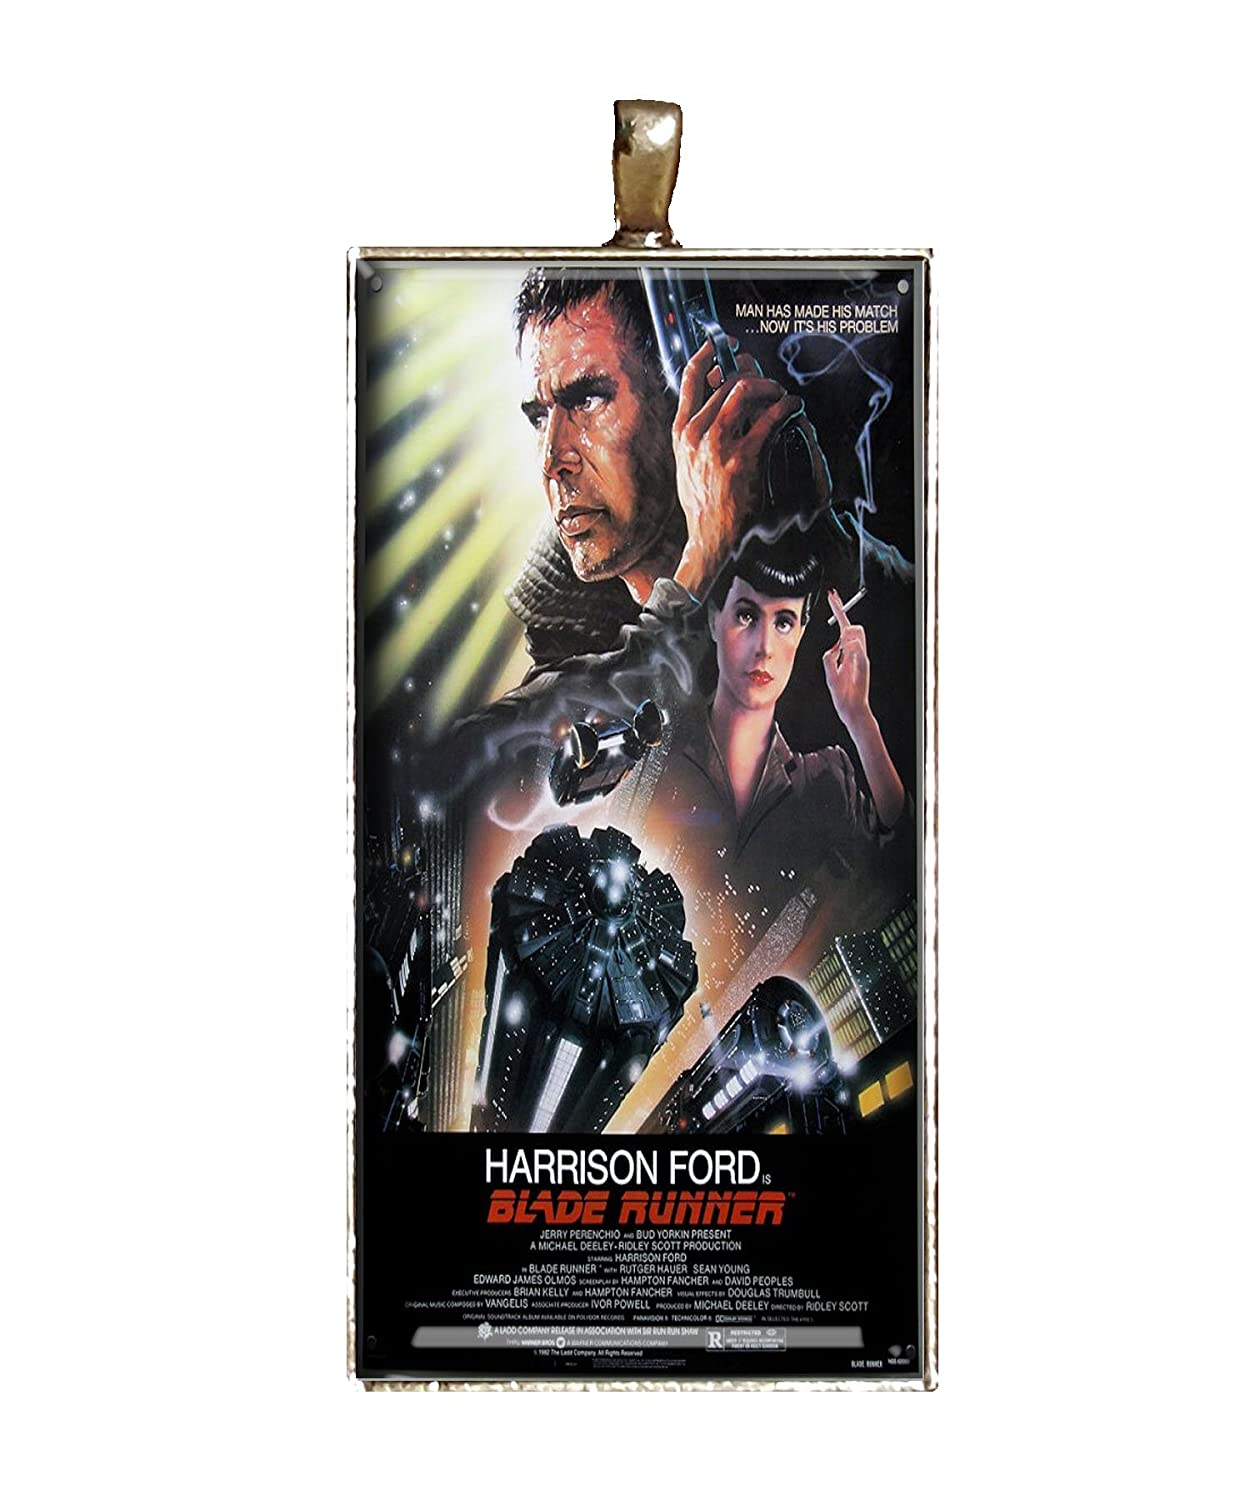 Blade Runner necklace handmade Classic Movie poster necklace jewelry gift pendant charm